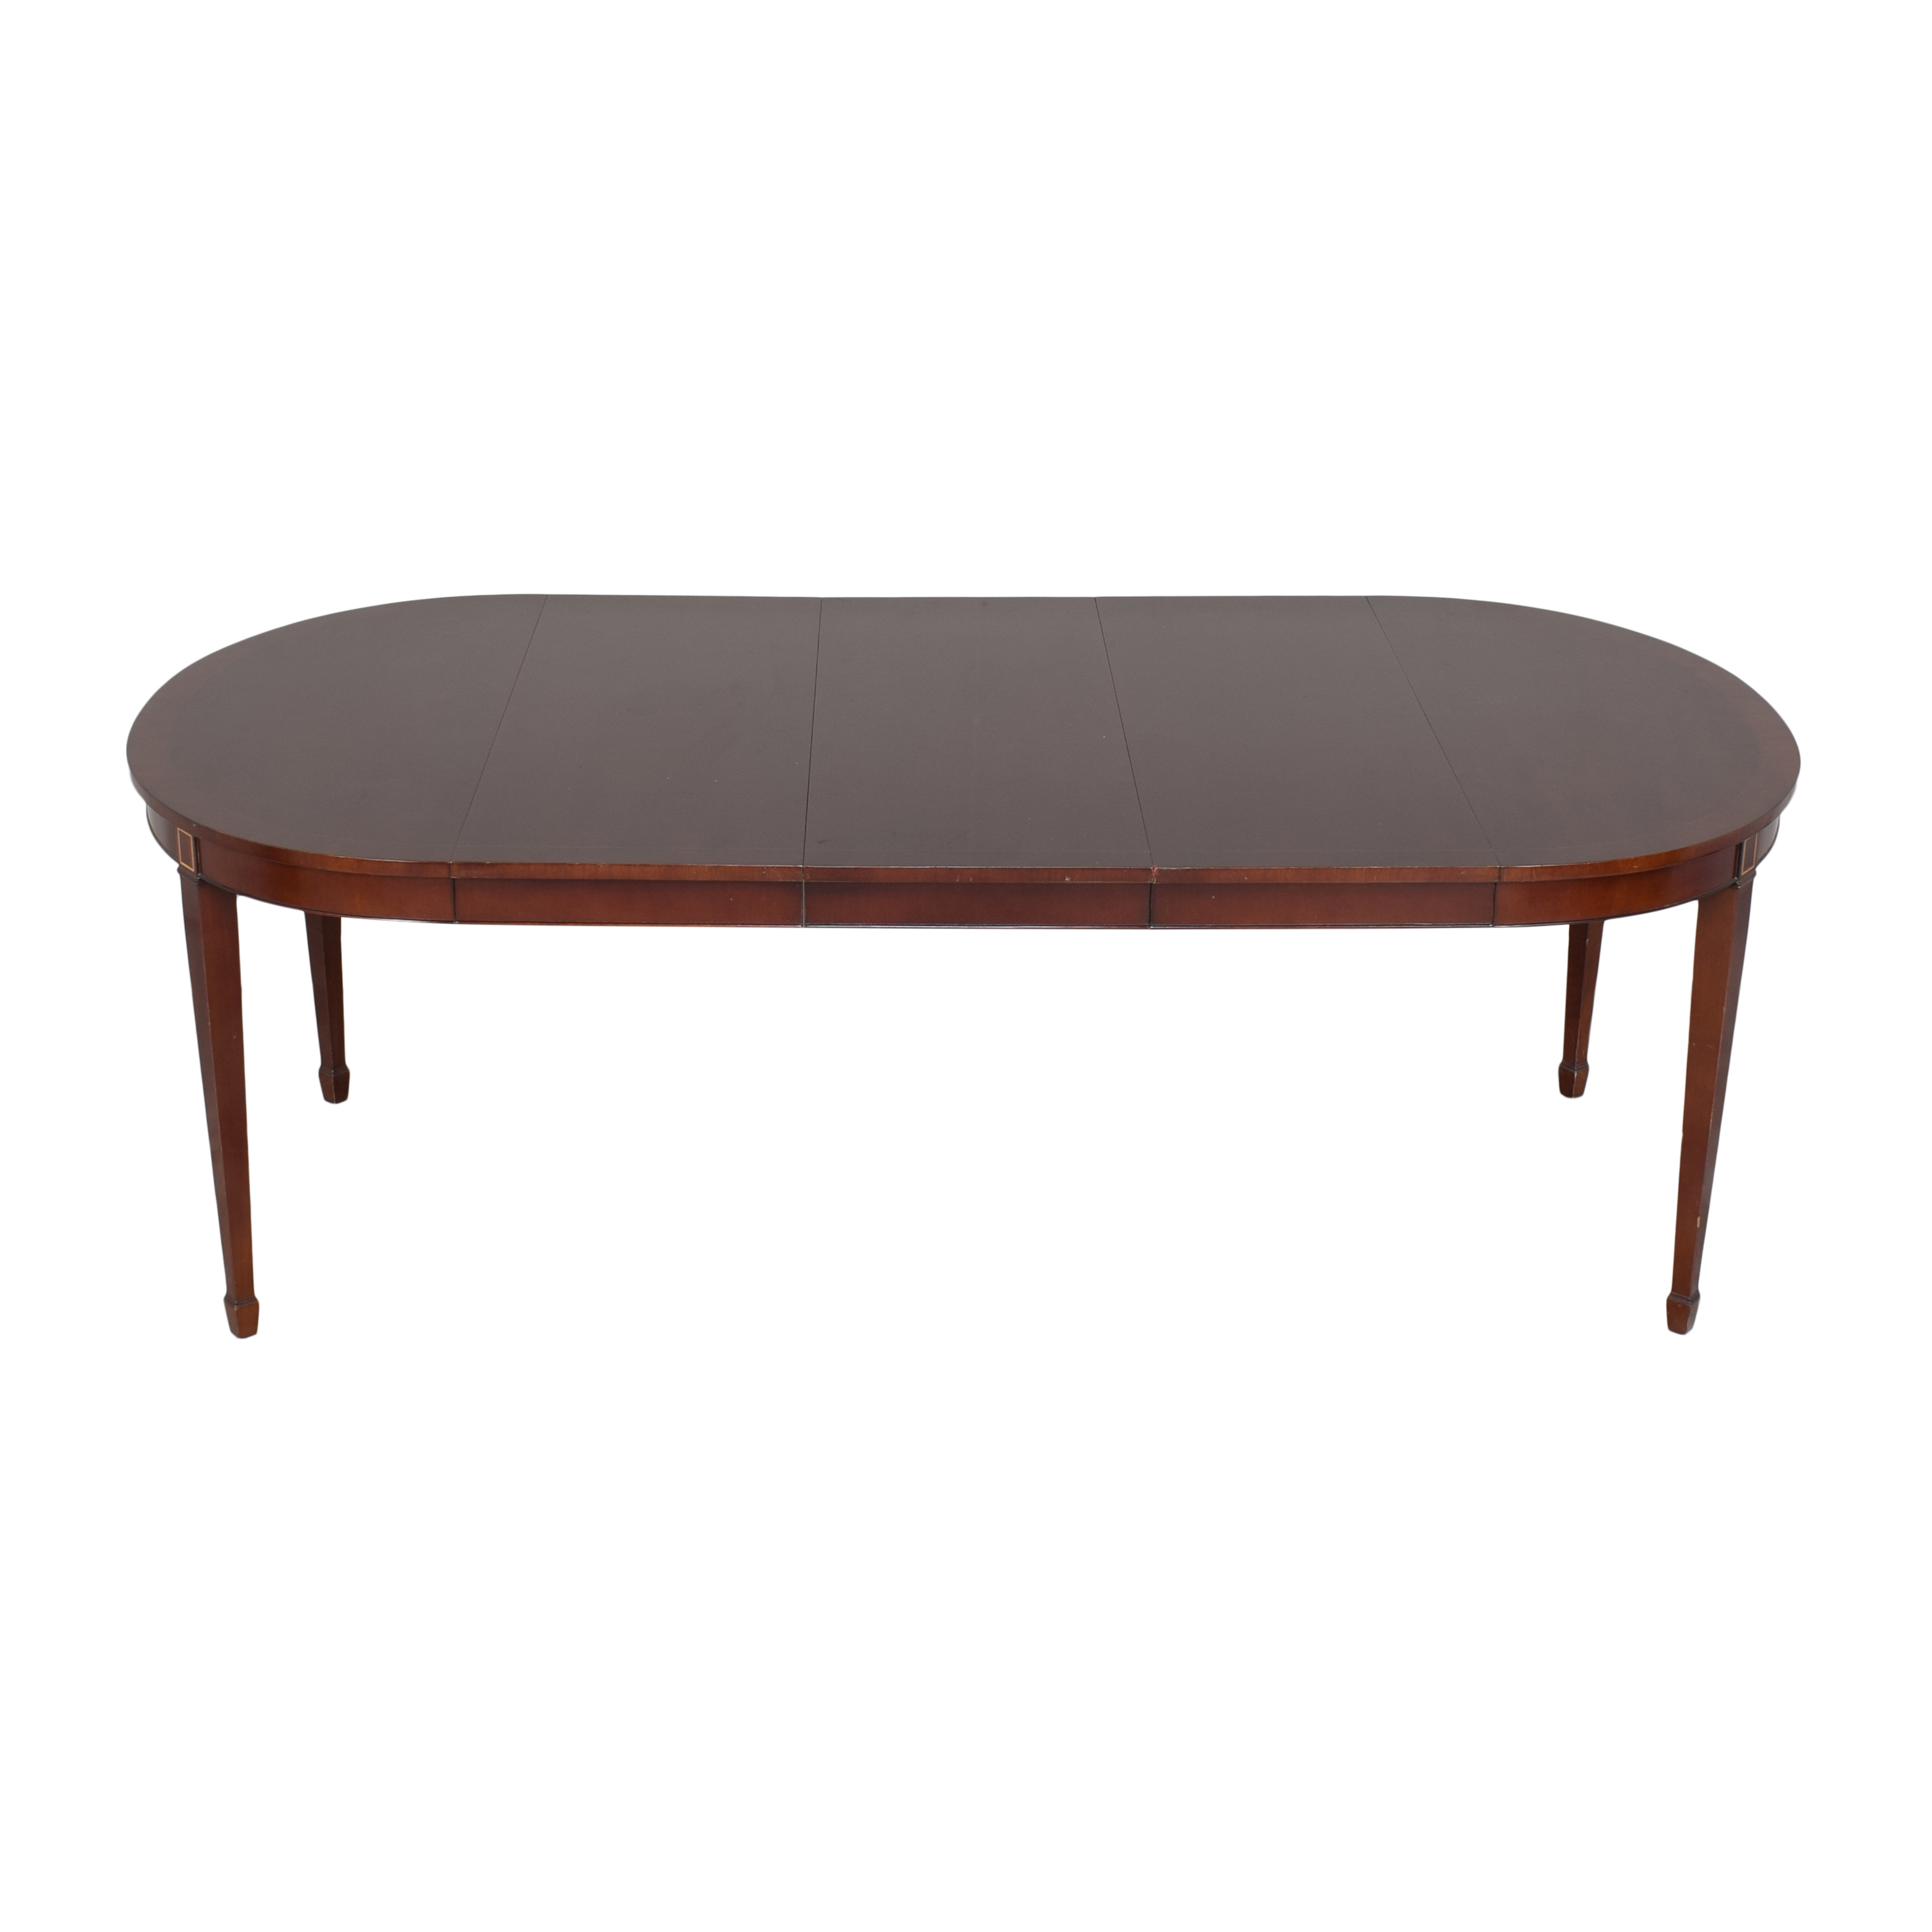 buy Kindel Round Extendable Dining Table Kindel Tables